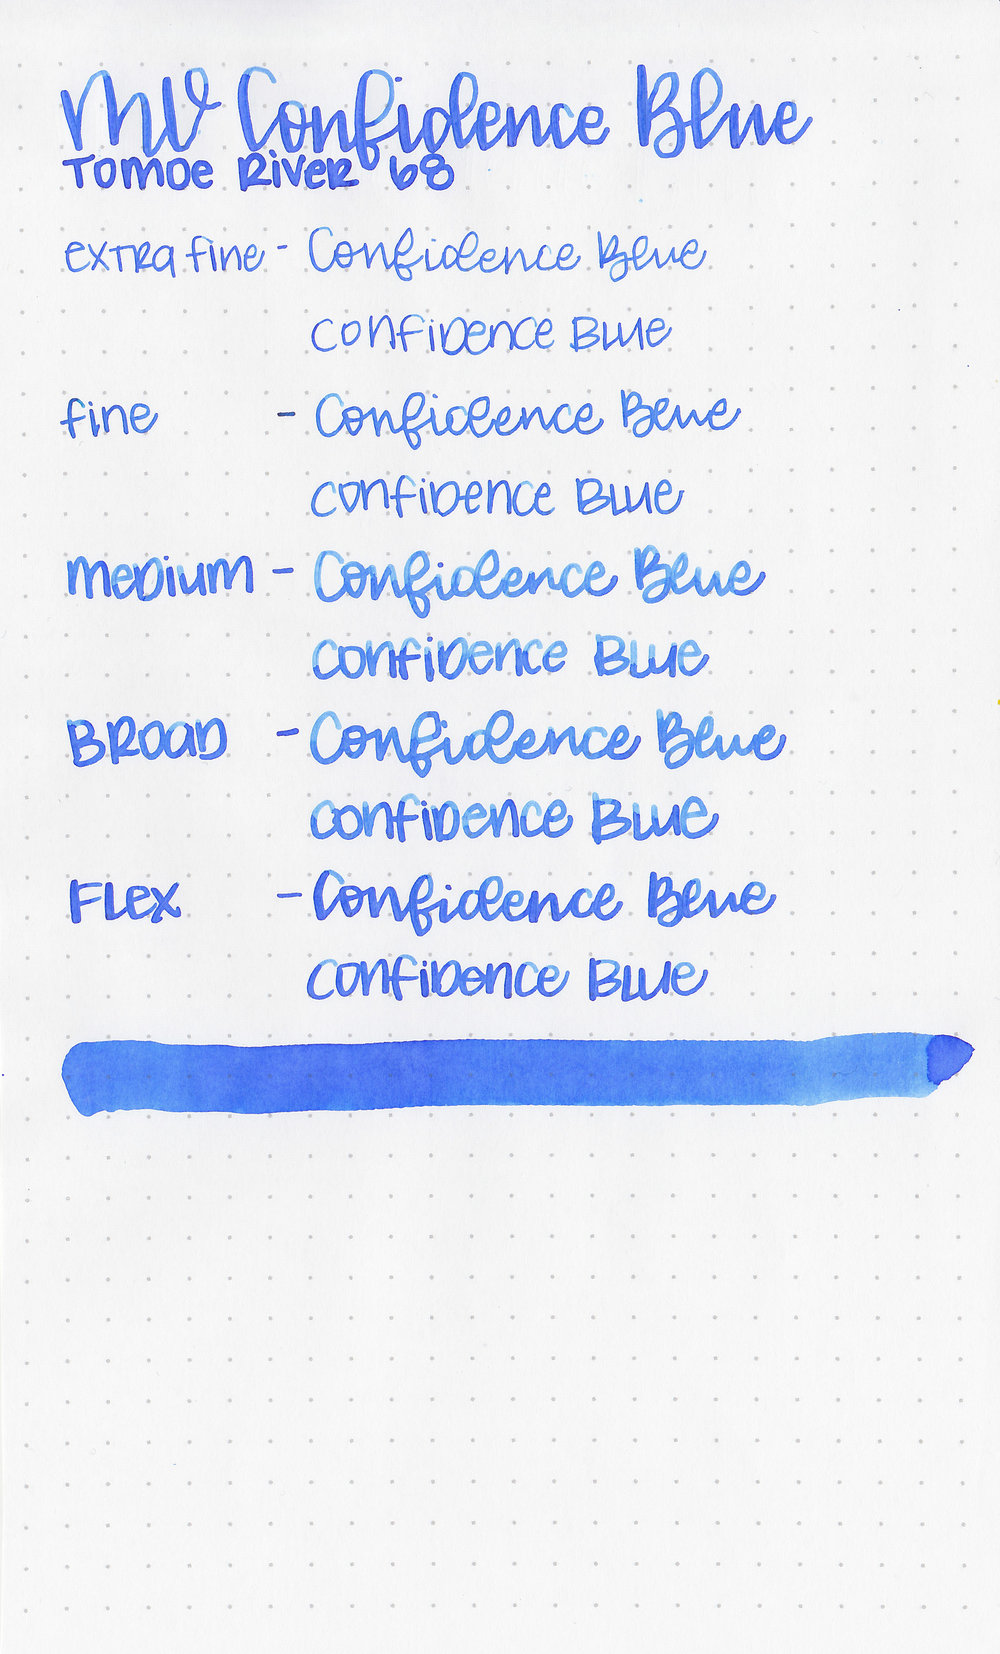 mv-confidence-blue-7.jpg